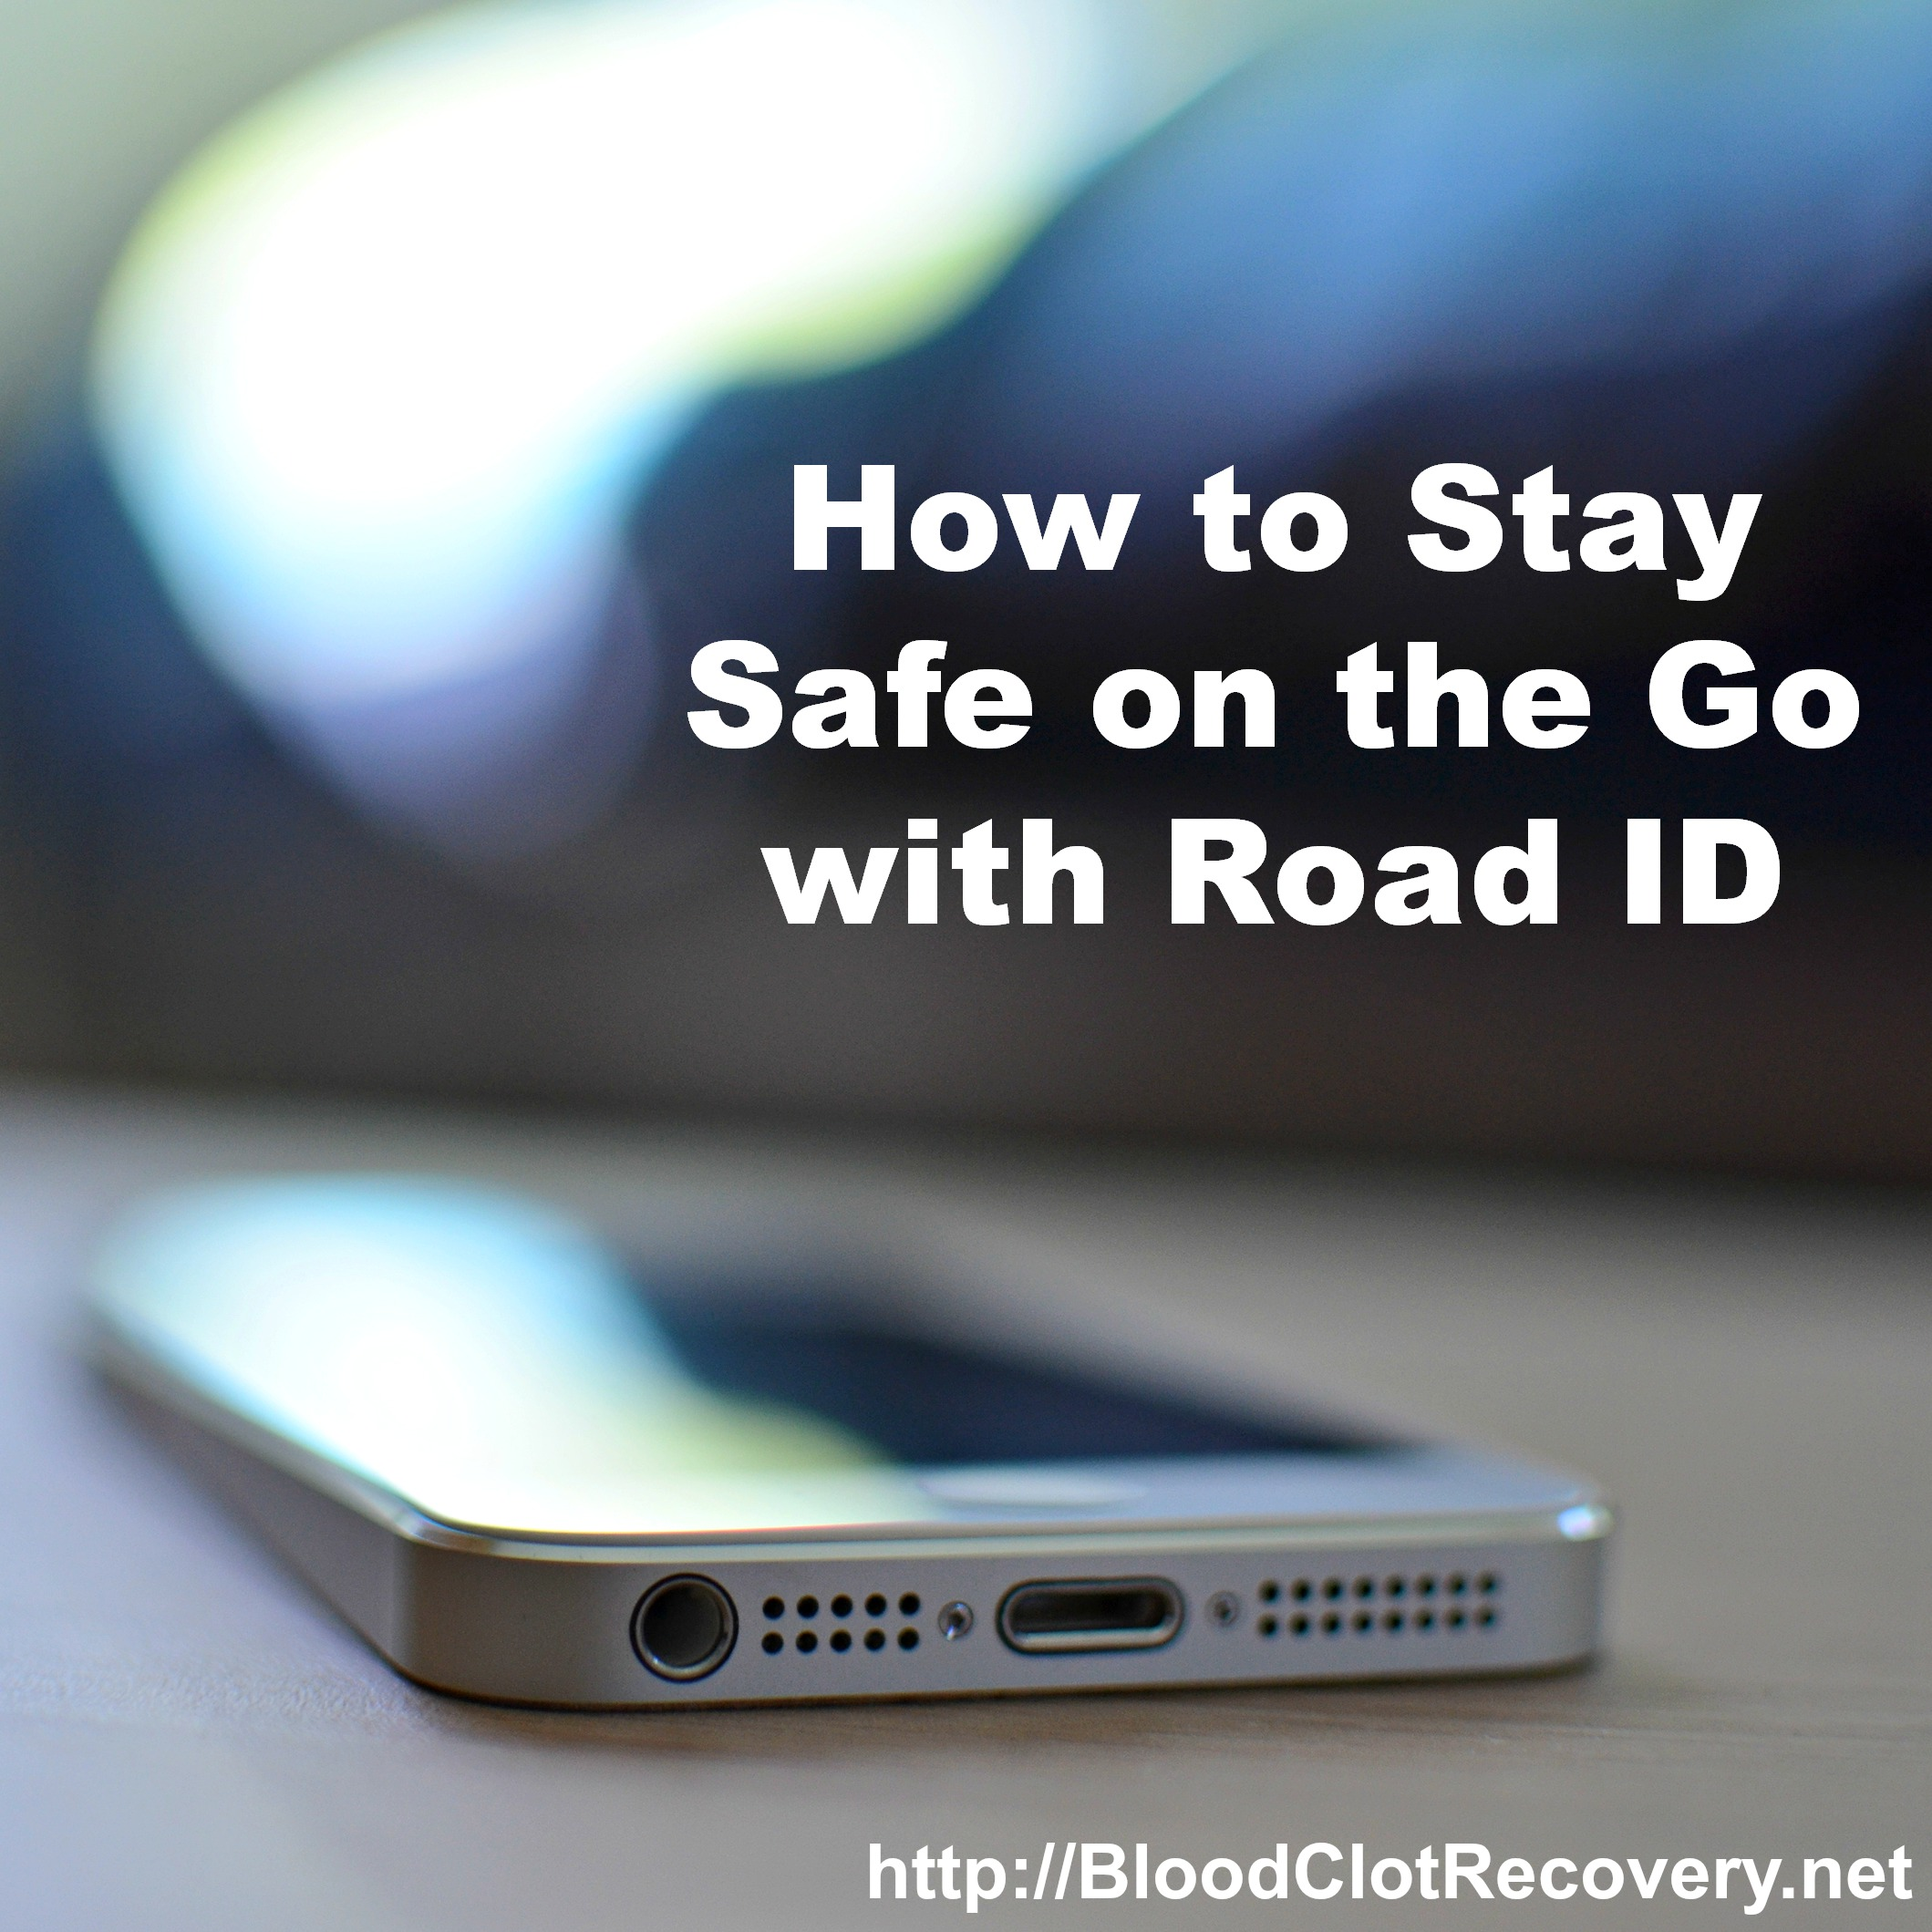 Jun 13, · The ROAD iD app is perfect for runners, cyclists, kids, hikers, walkers, skiers and basically anyone not glued to the couch. Get it and you'll have safety and /5(34).